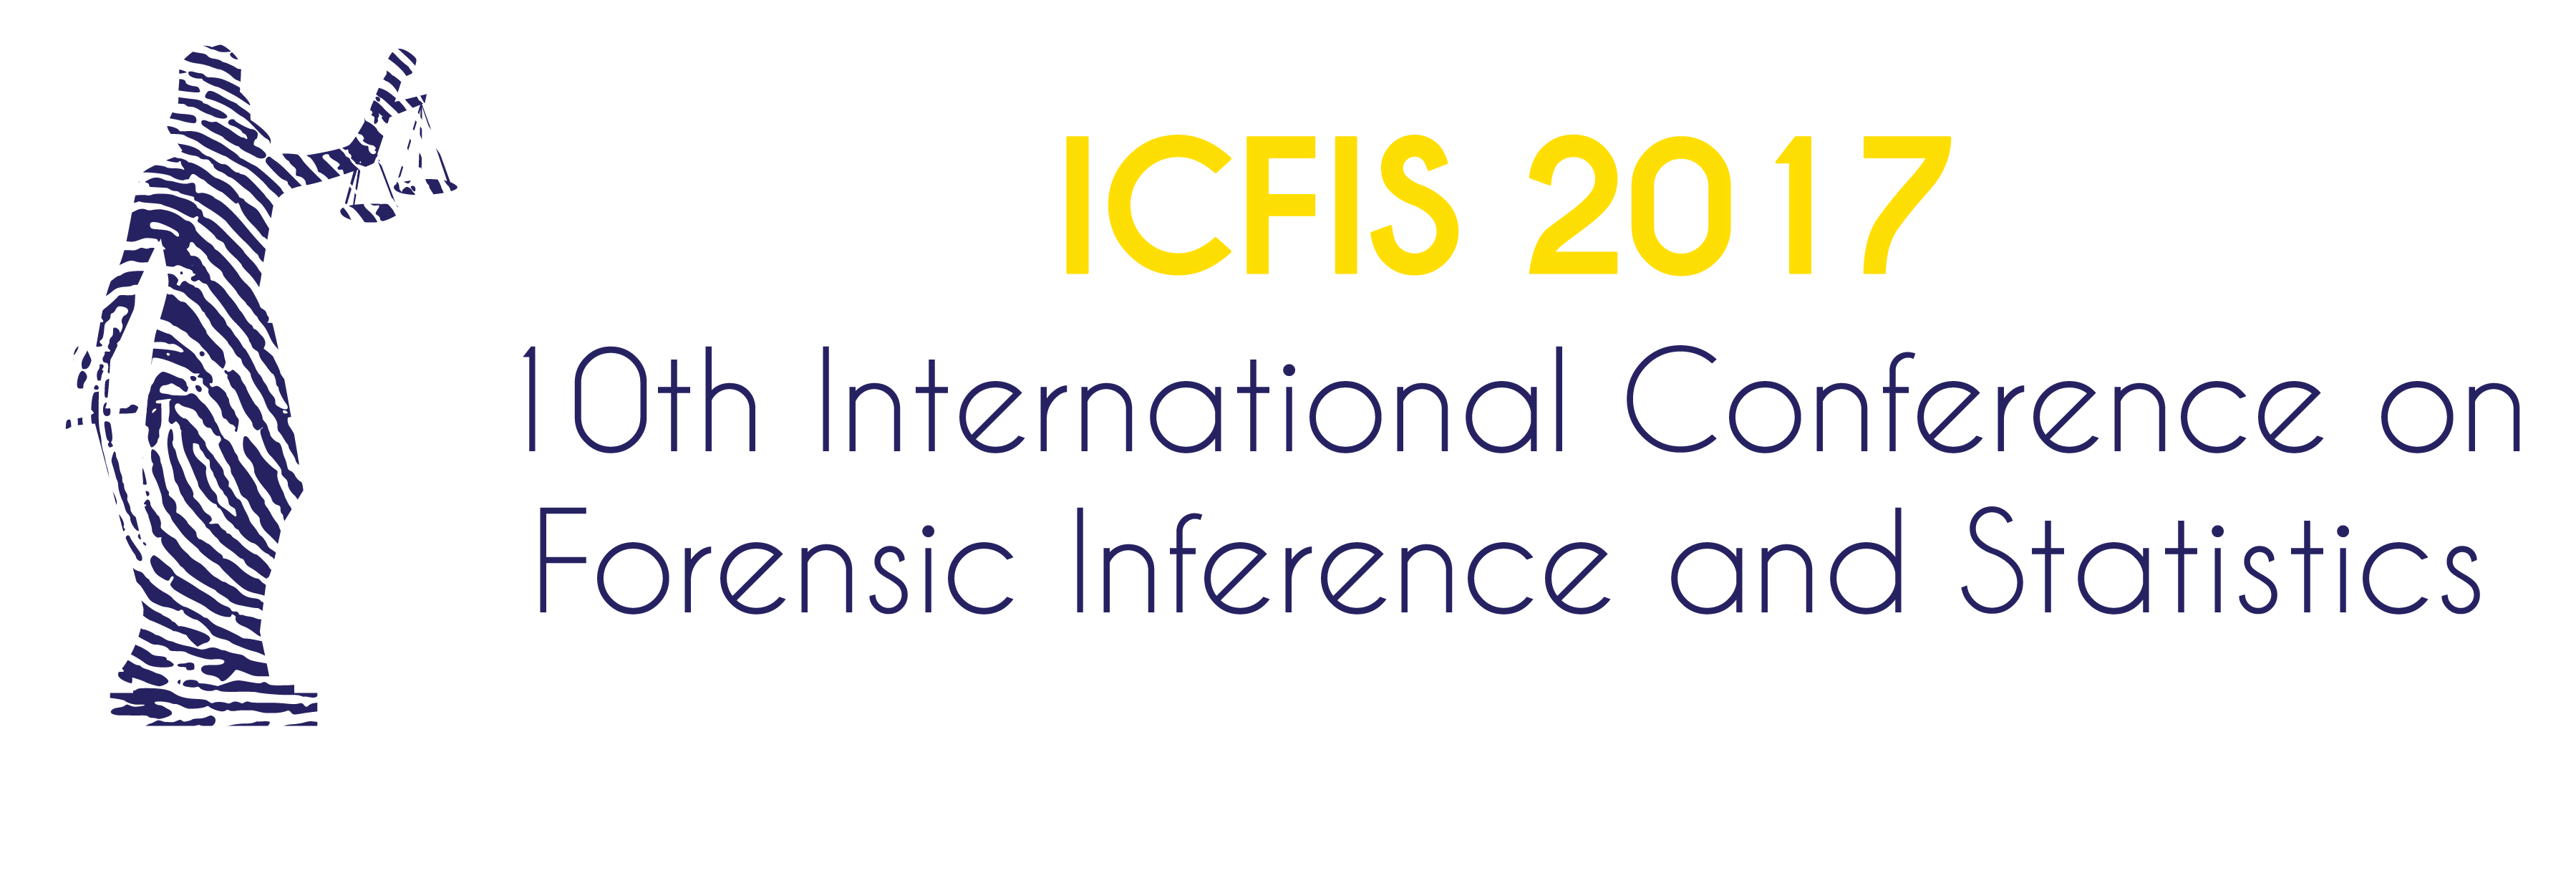 ICFIS 2017: International Conference on Forensic Inference and Statistics